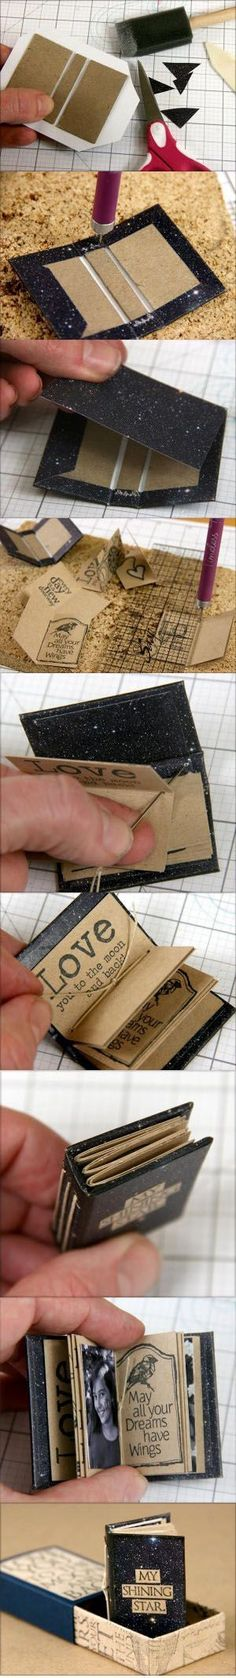 Constellations Mini Album Tutorial #clubscrap clubscrap.com/...